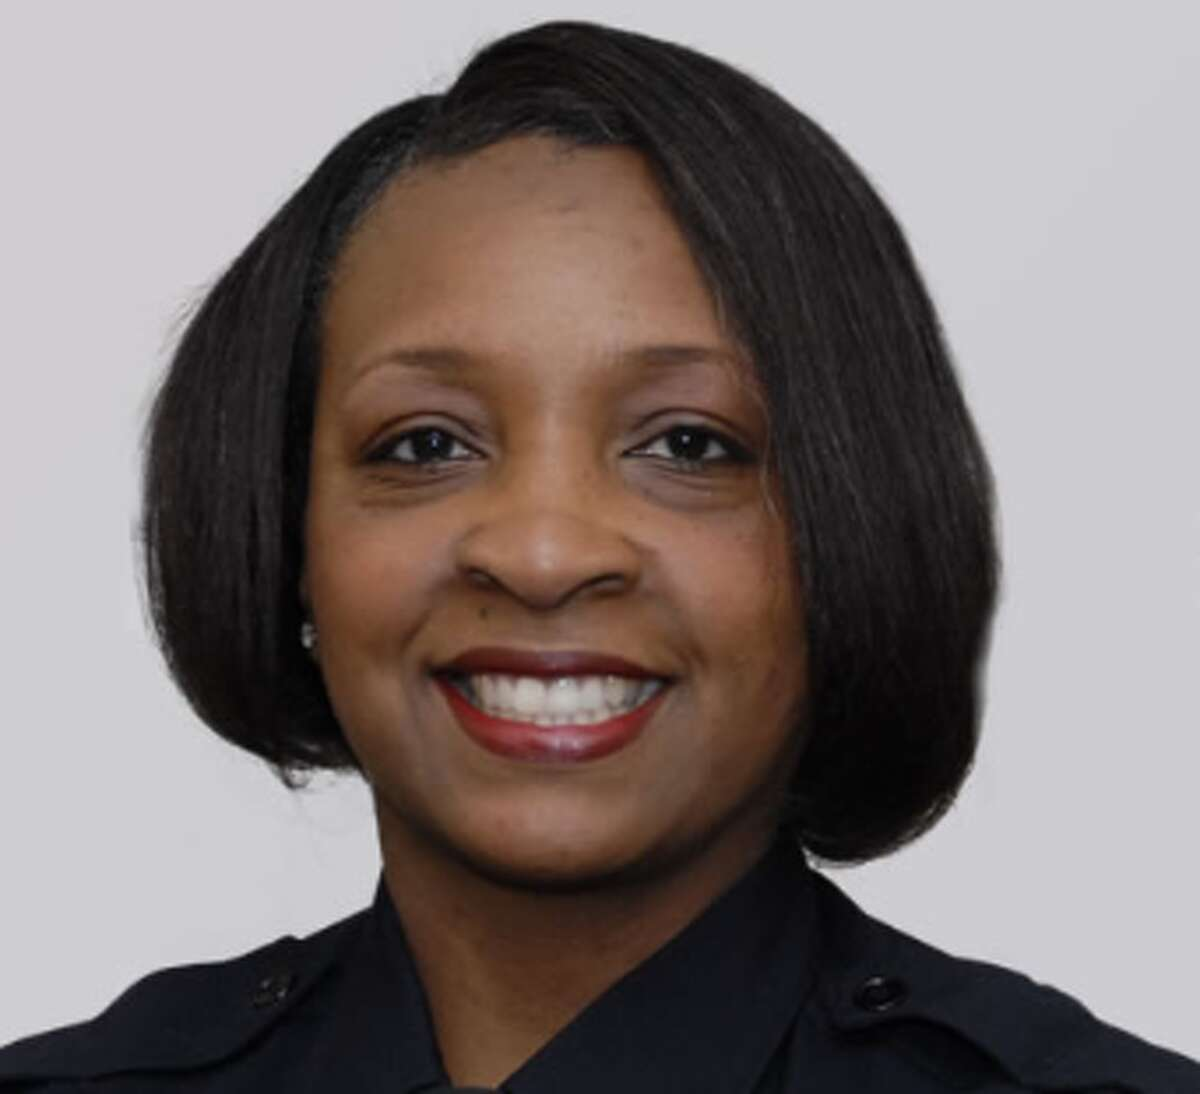 Mildred Oliver, a former internal affairs investigator with the Oakland Police Department, has filed a lawsuit against her employer alleging that she was scapegoated in a far-reaching teen sex abuse scandal.